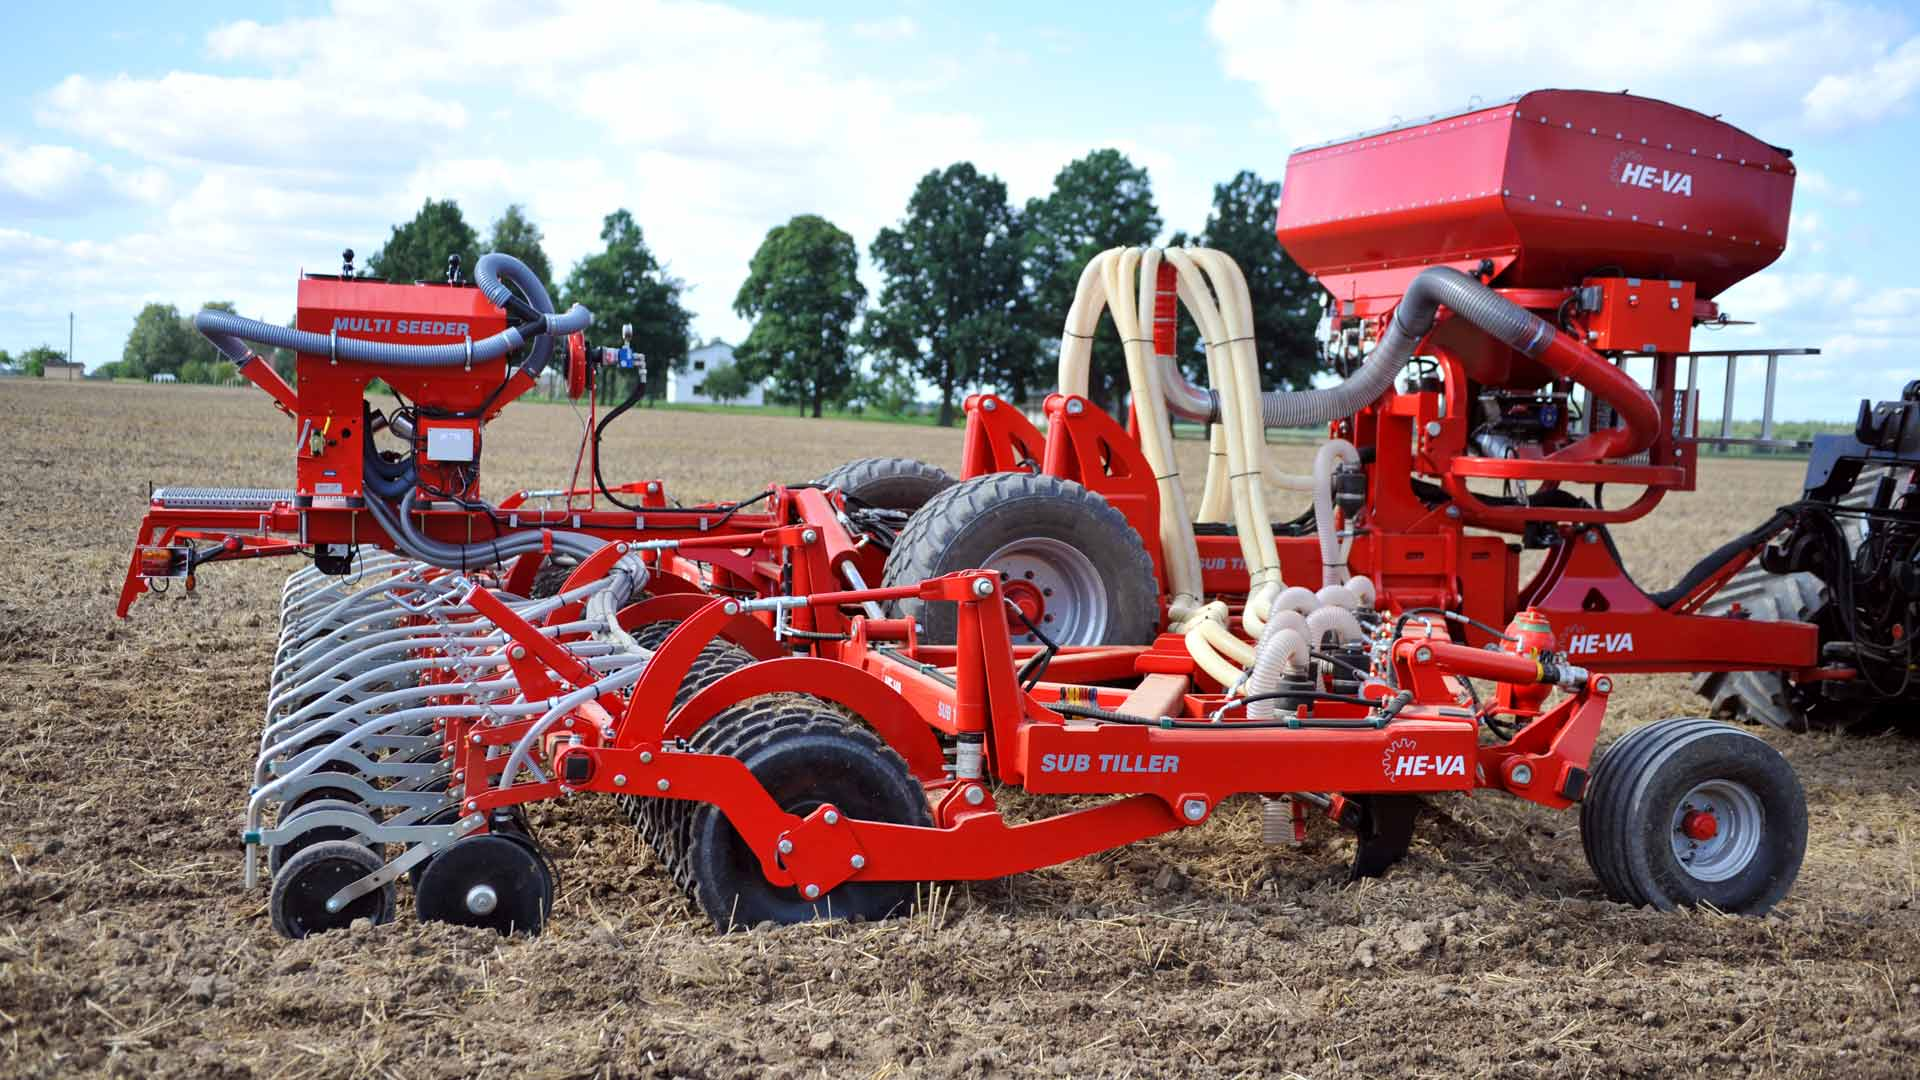 HE-VA Sub-Tiller loosens the soil, spreads fertilizer and consolidates the soil. The disc coulters create 2 mm drills in the surface of the soil, where the rape seeds are placed and the roller consolidates the soil around the seeds, before the snail poison is spread on the surface.